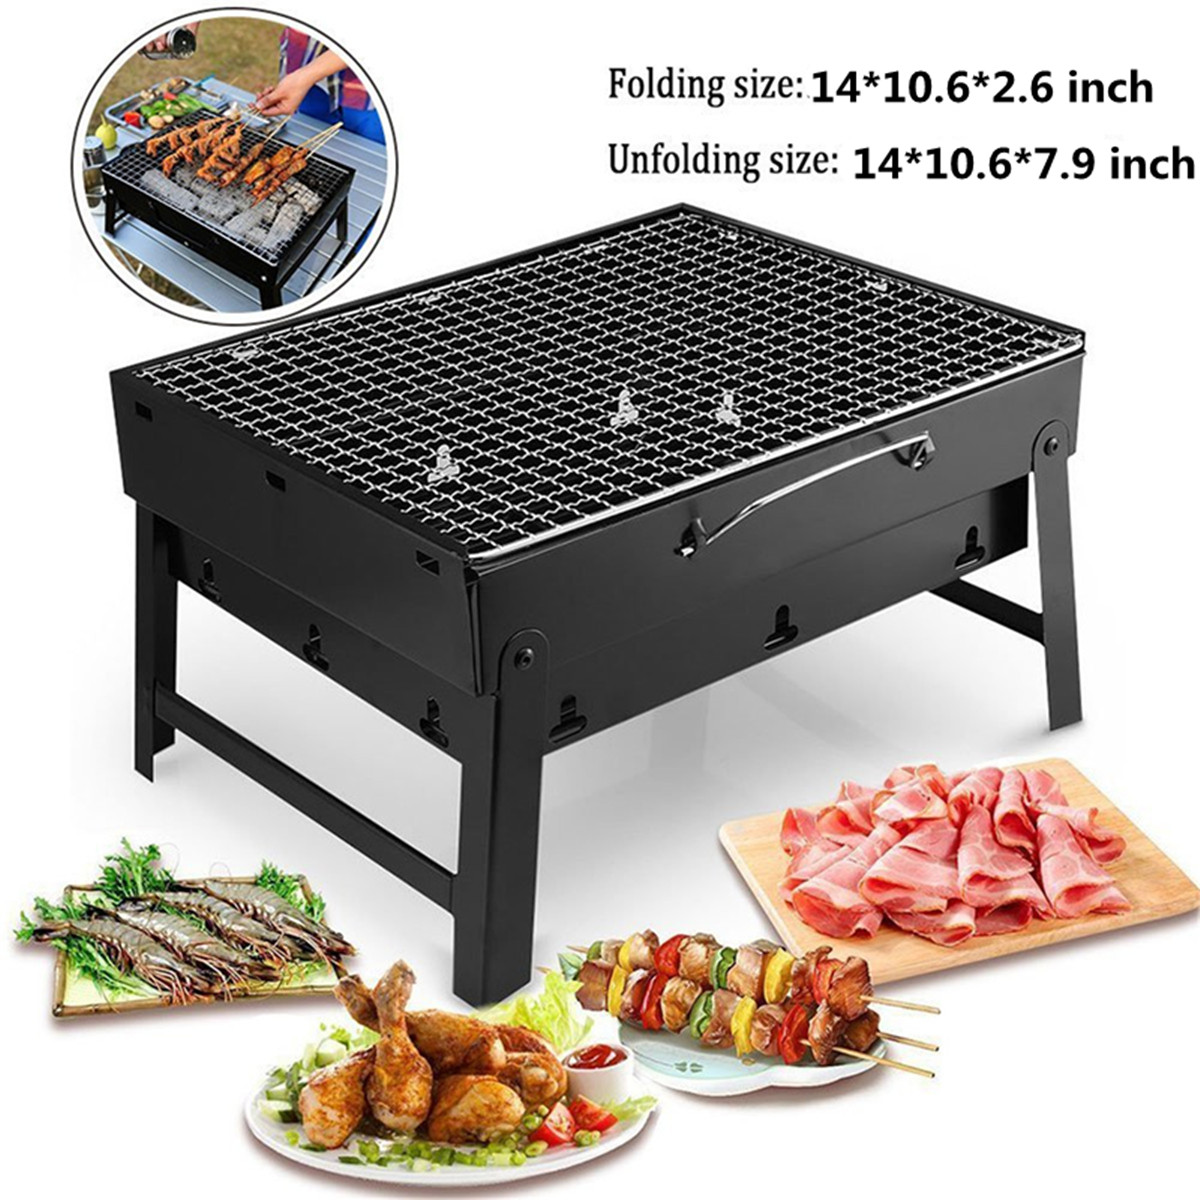 "Mini portable Folding Stainless Steel Notebook Charcoal Grill Barbecue Grill Camping BBQ Outdoor Cooking 14""*10.6""*7.9"""